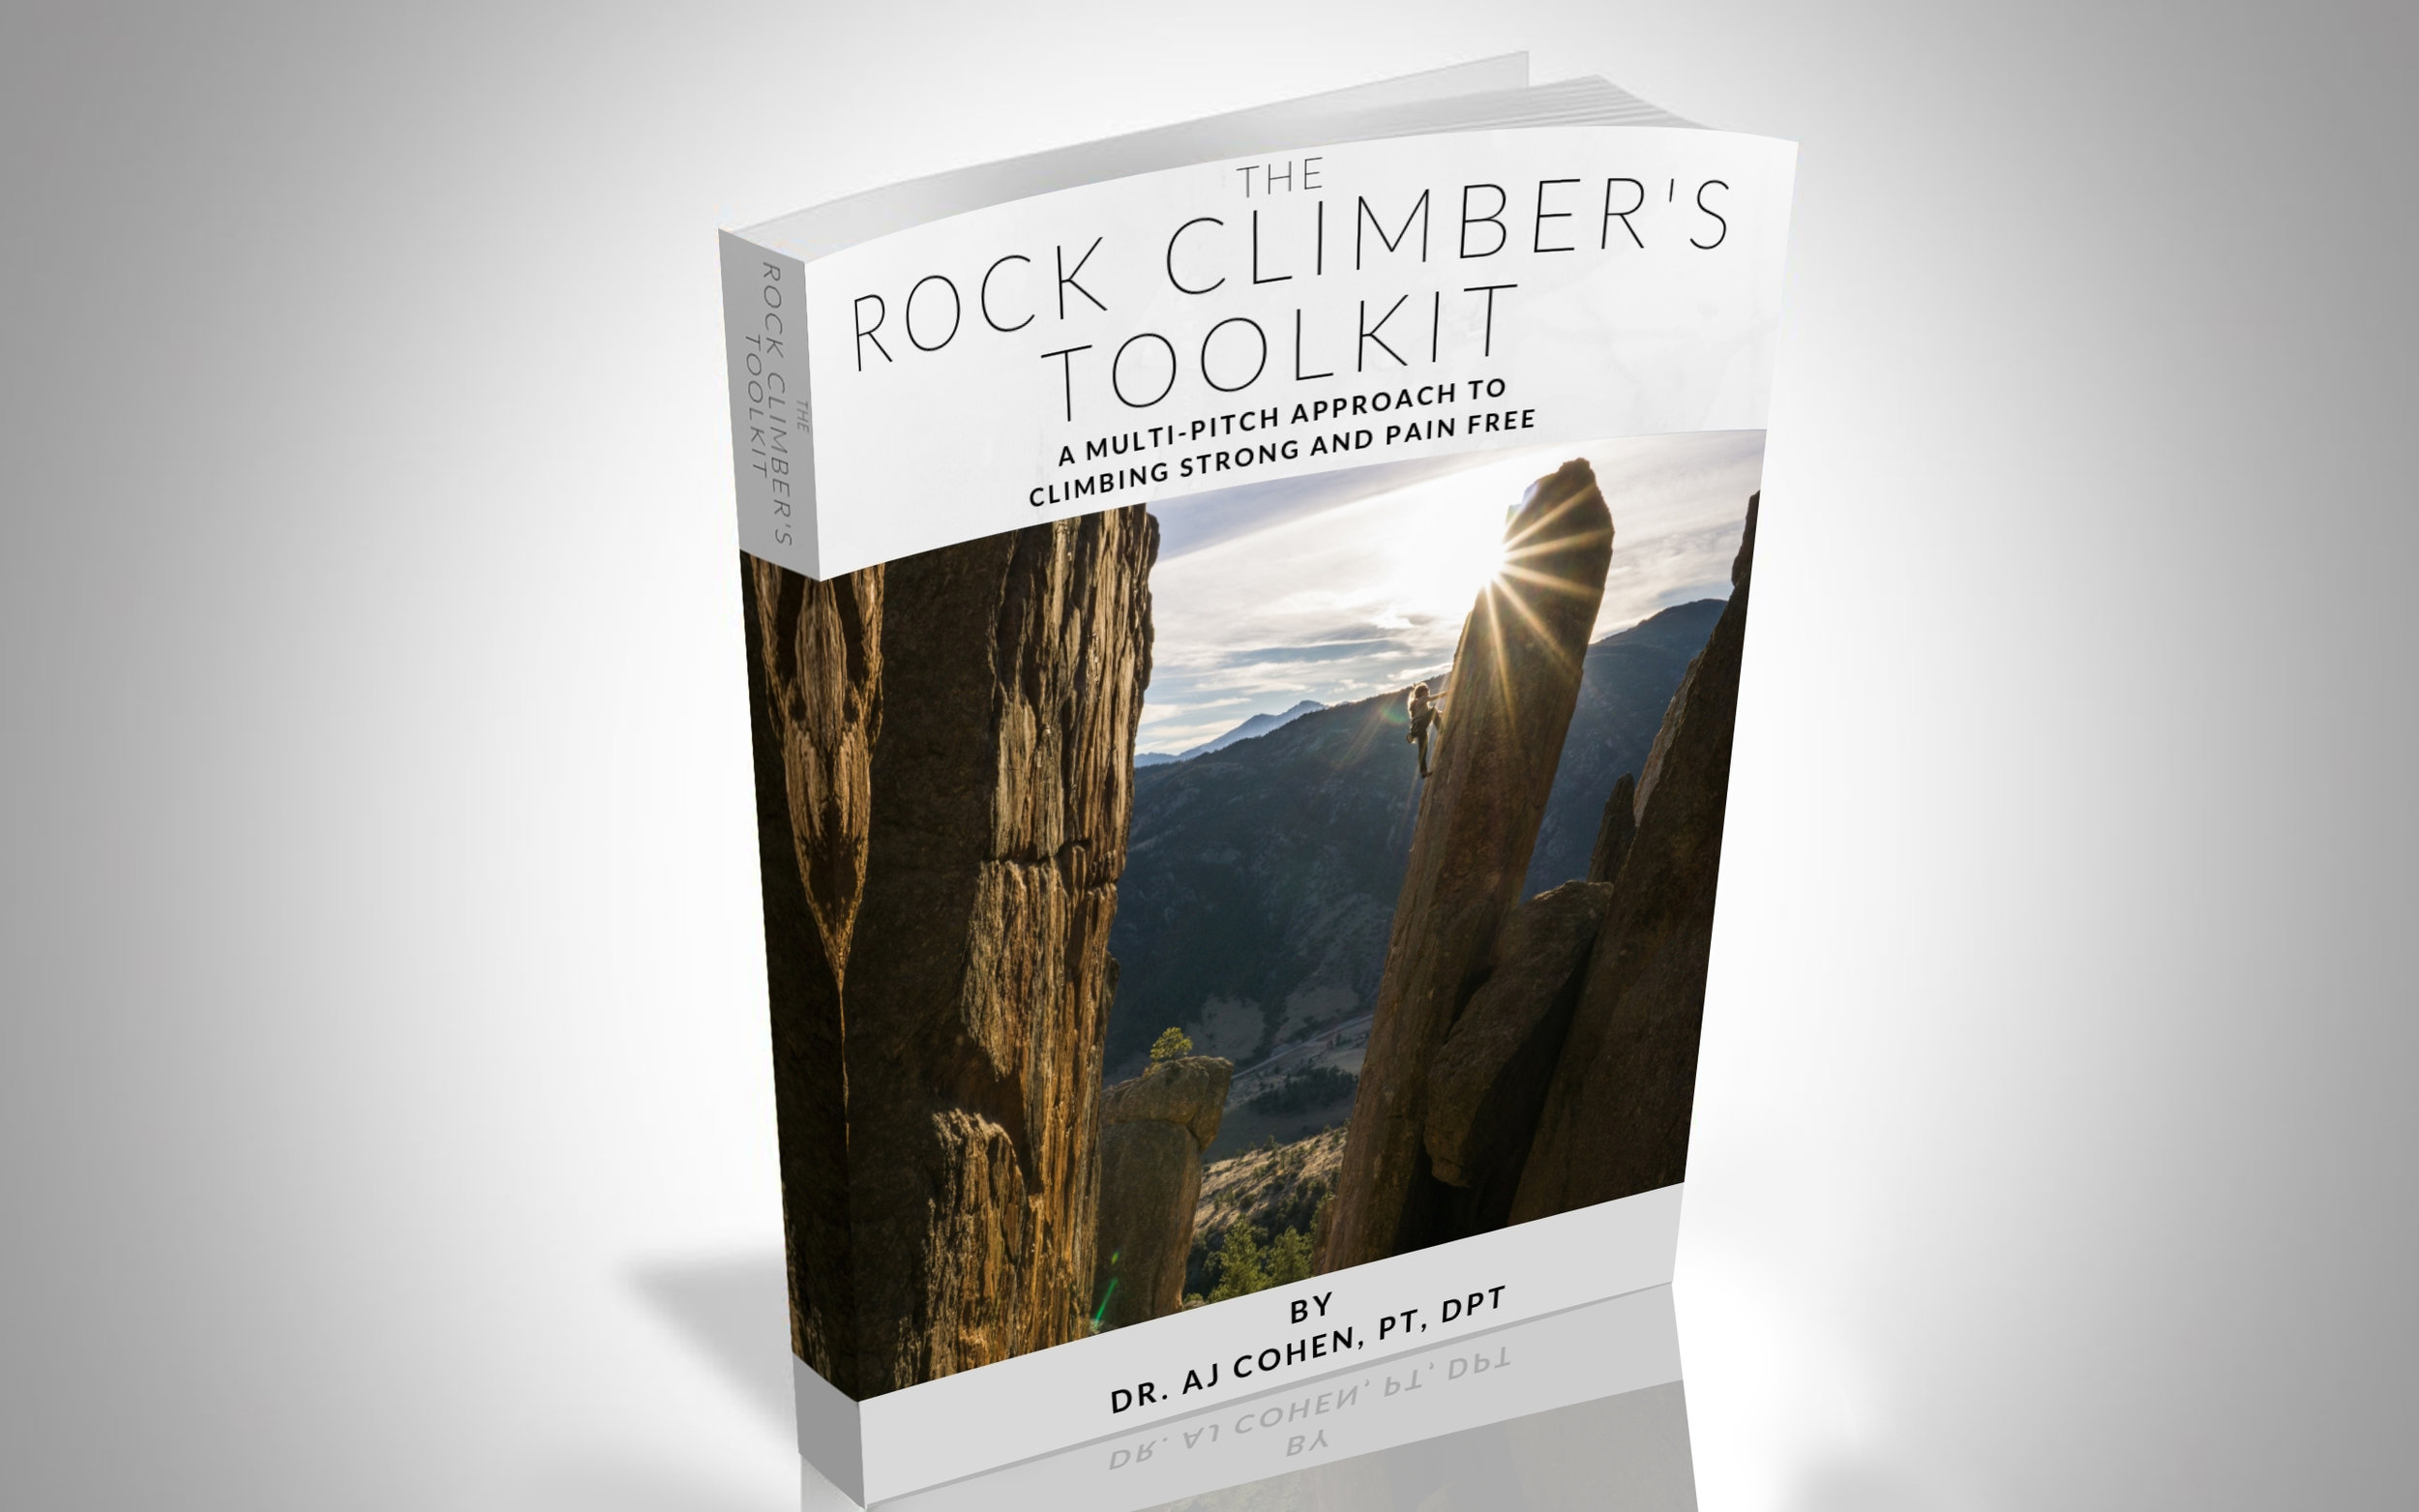 The Rock Climber's Toolkit: - A Multi-Pitch Approach to Climbing Strong and Pain-Free